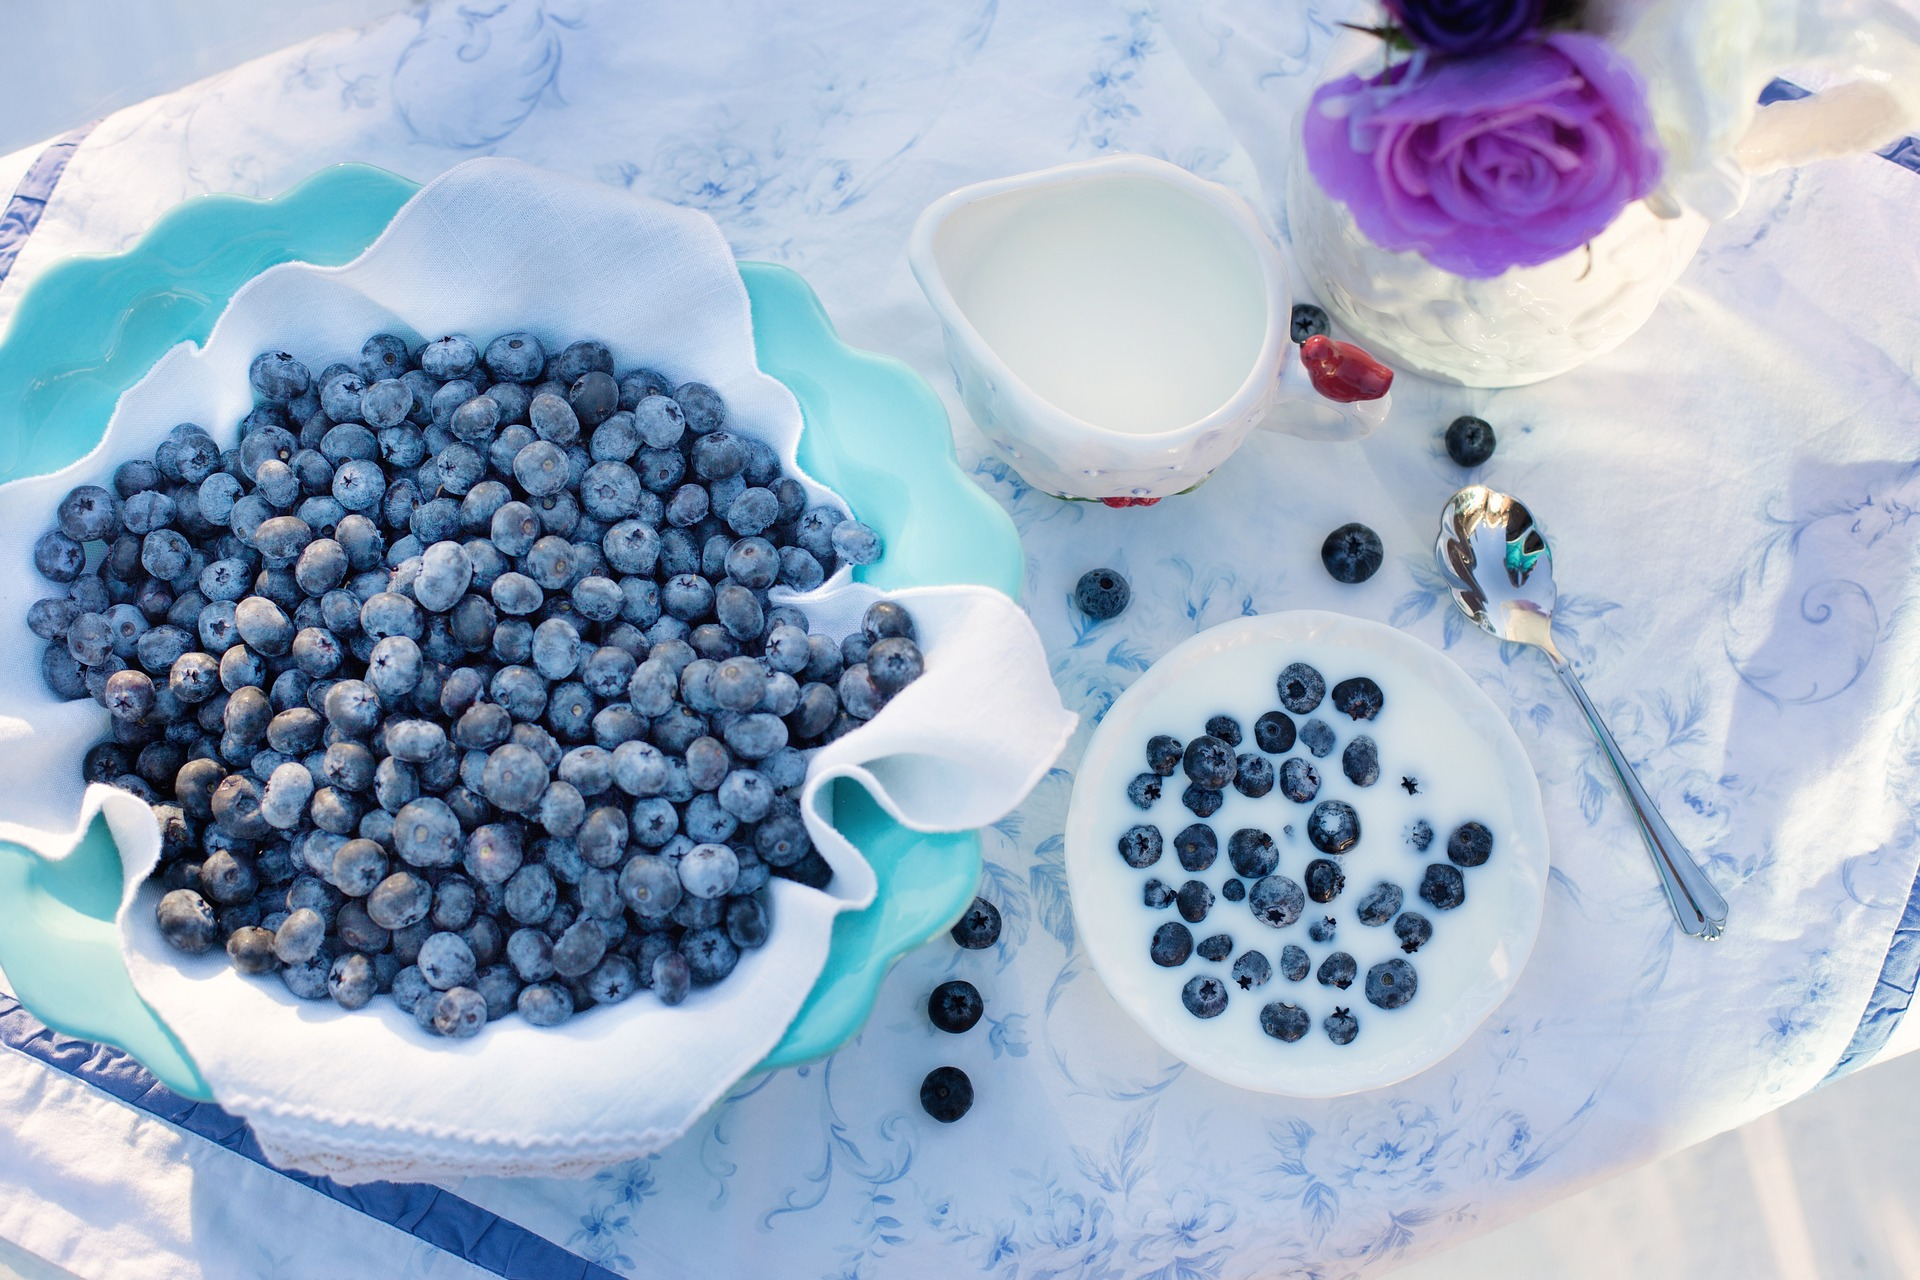 Healthy Snacking for Better Blood Sugar